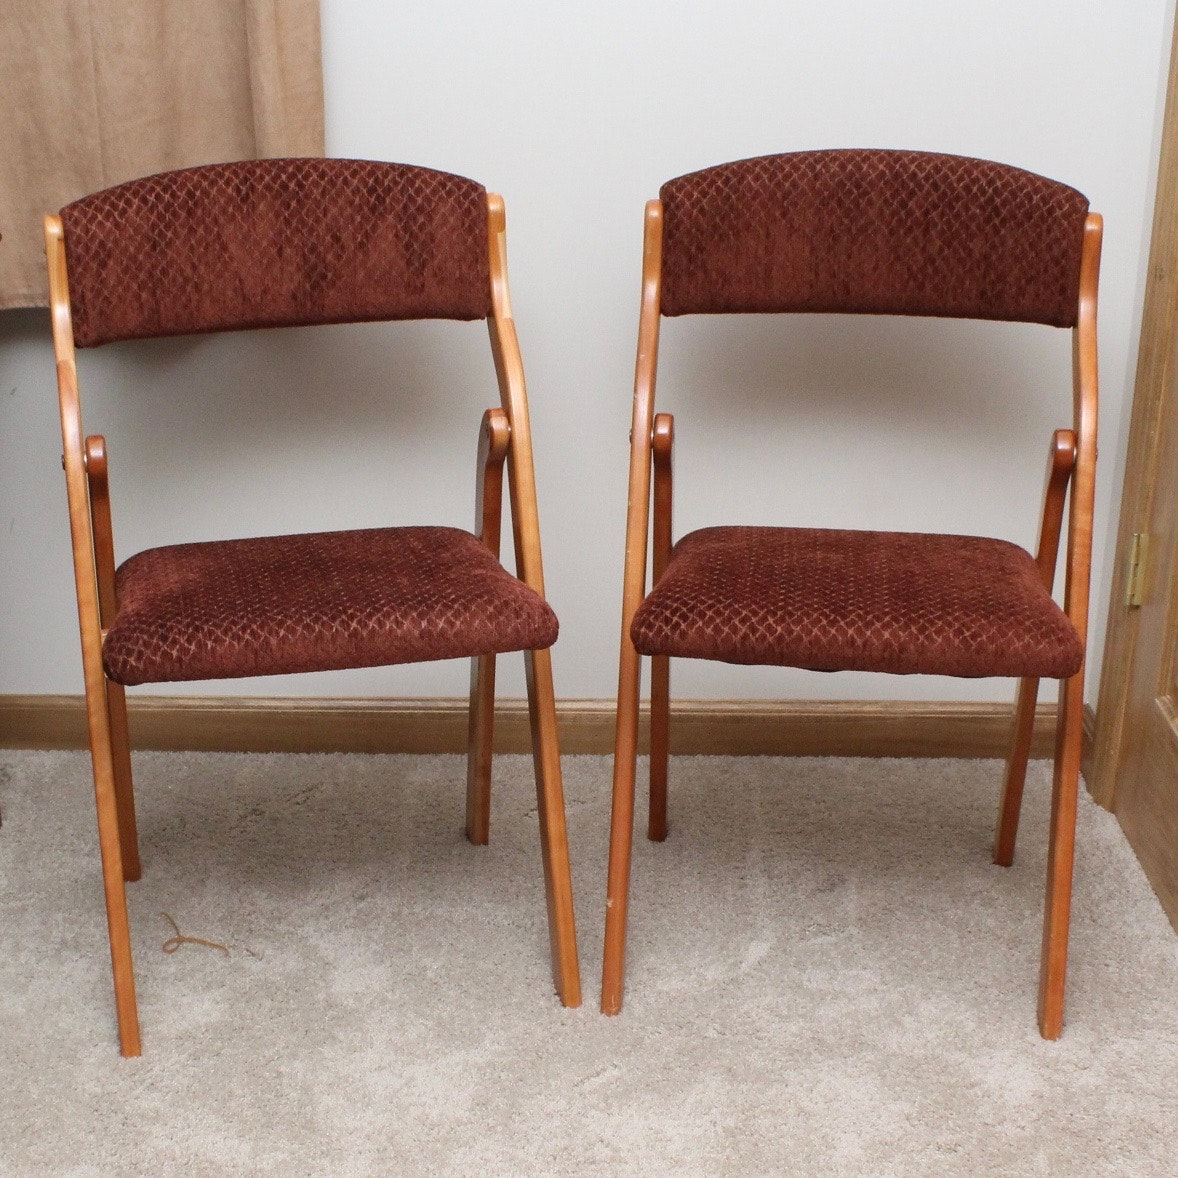 Upholstered Folding Chairs